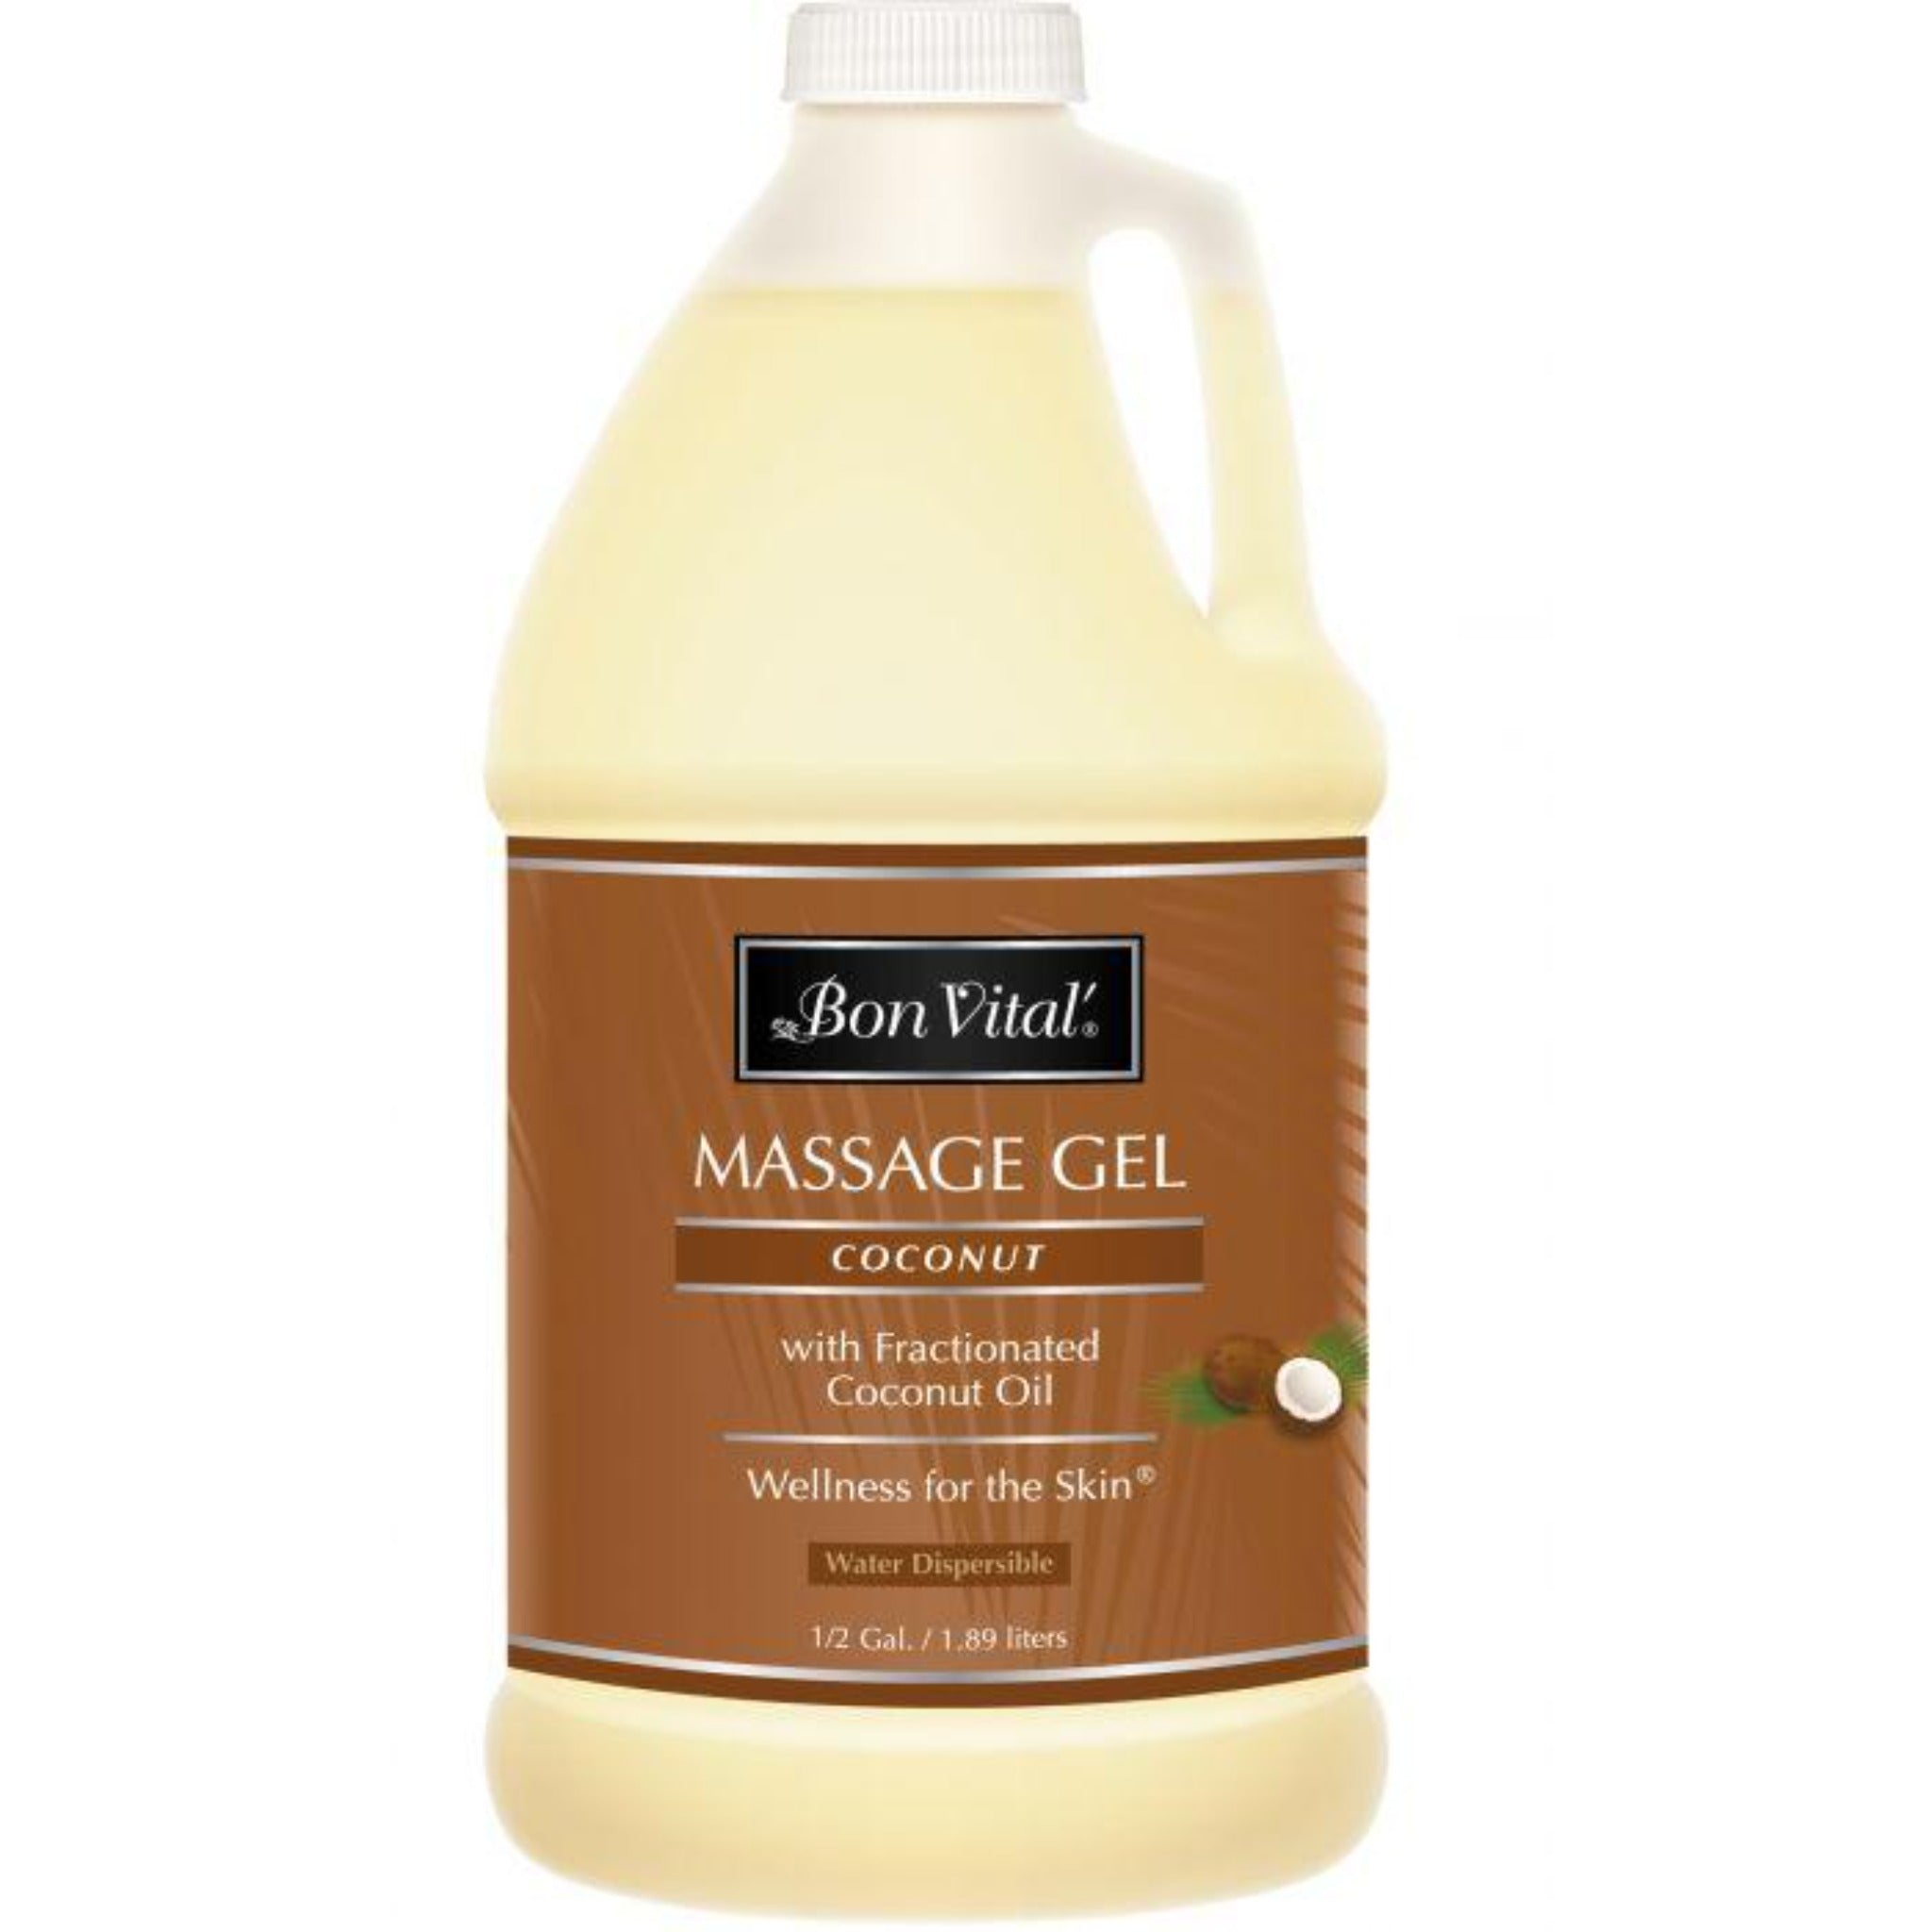 Bon Vital Massage Gel - Coconut - Paraben Free